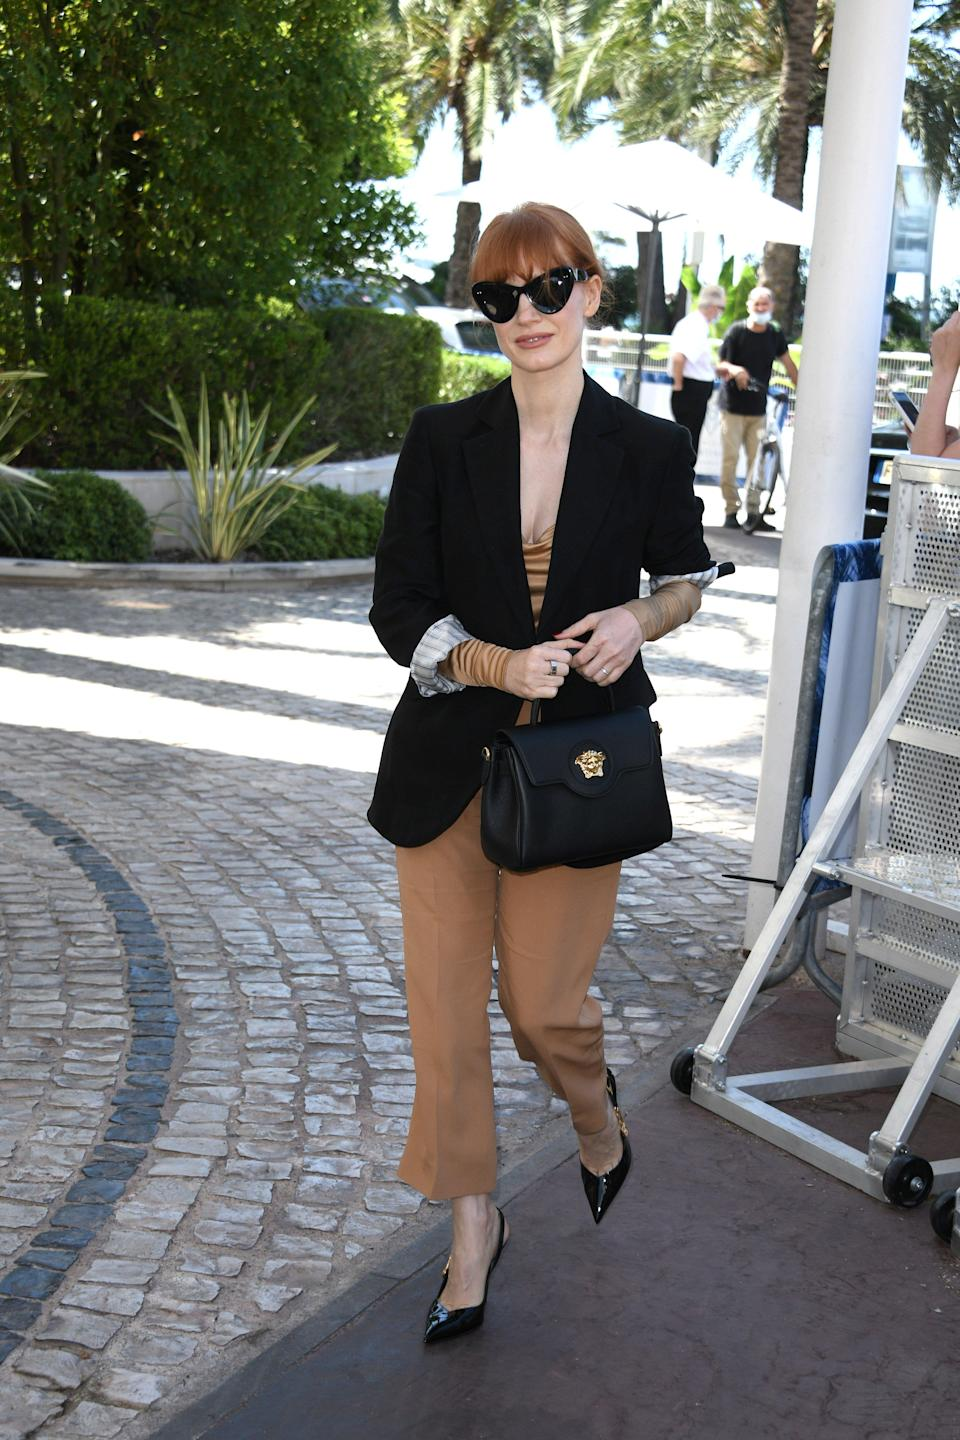 Jessica Chastain in Cannes. - Credit: KILPIN / MEGA